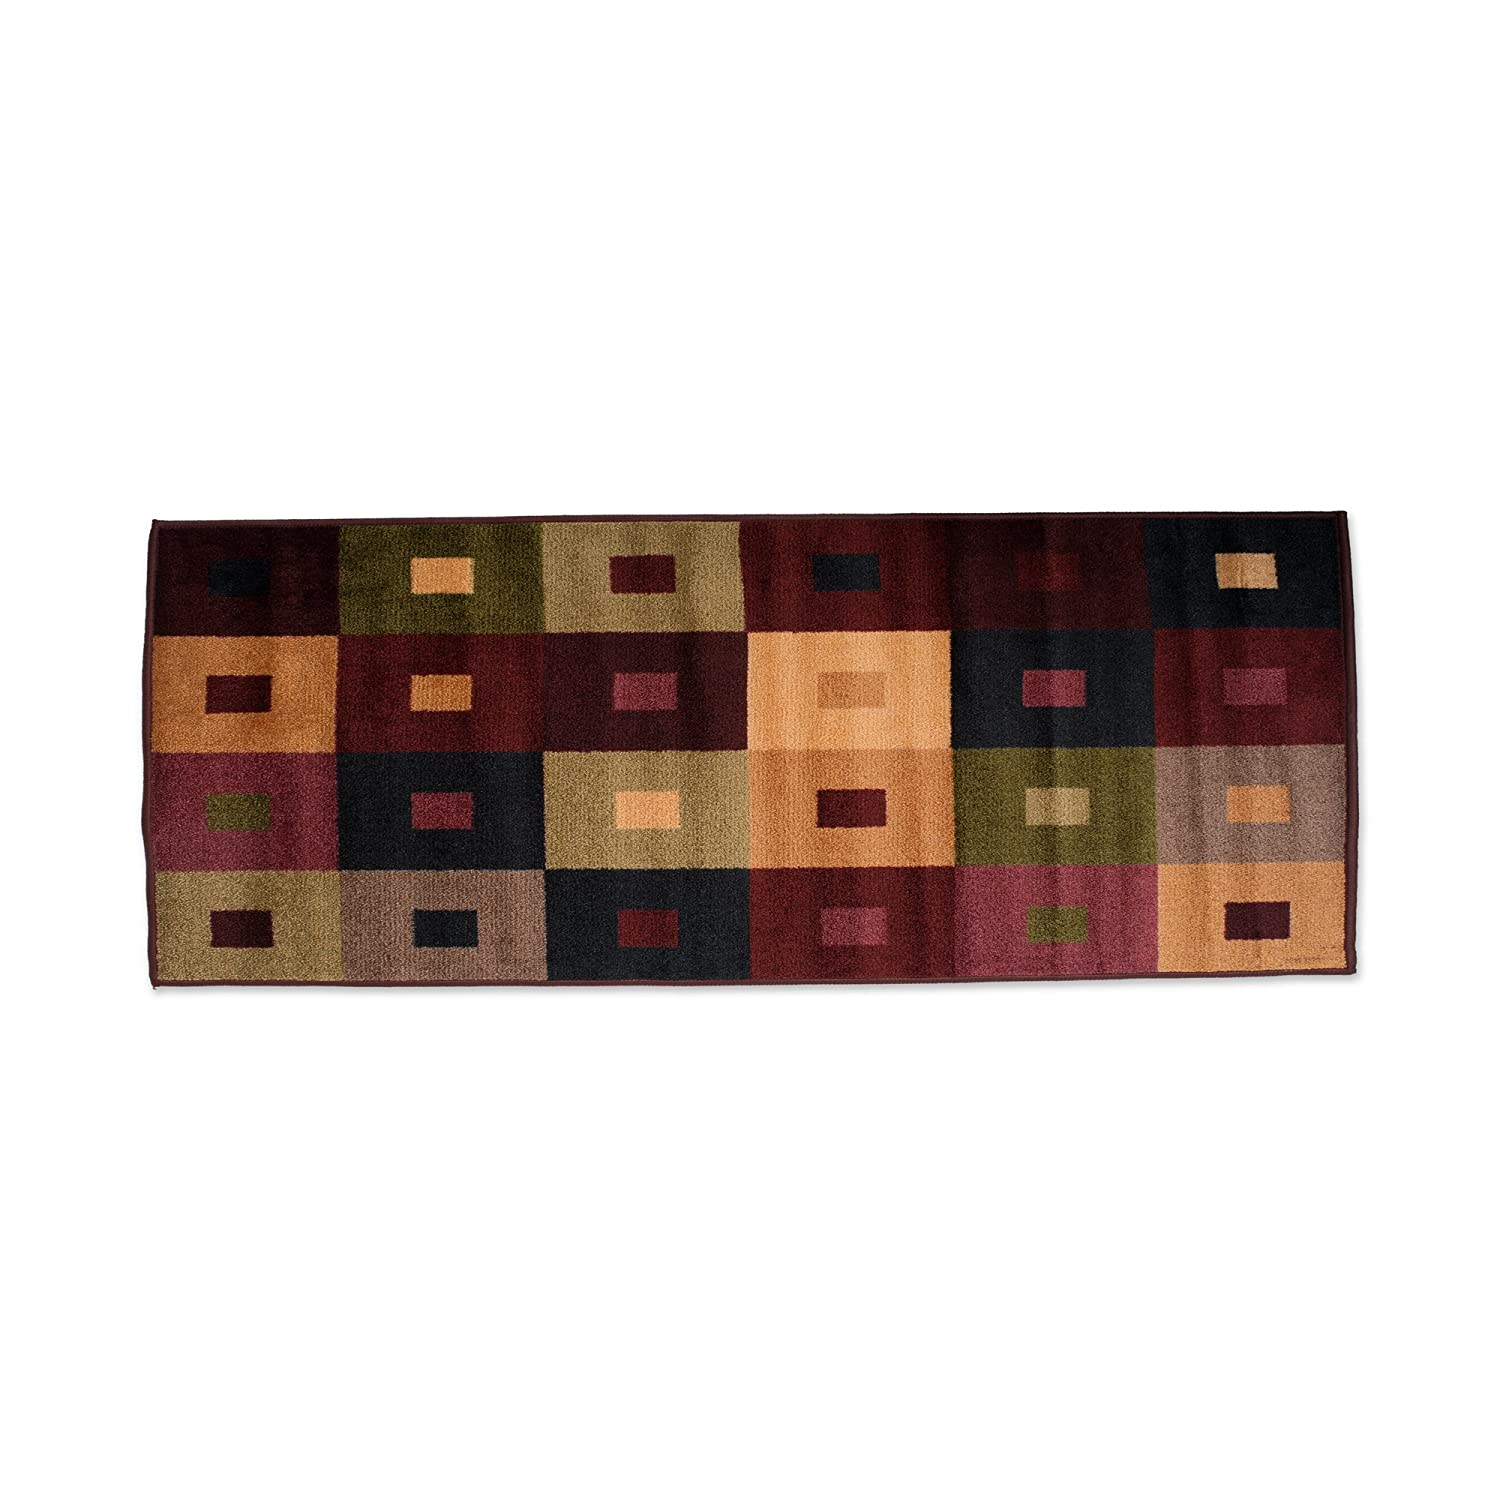 Fashion Contemporary Non-Skid Runner, 22x60, Perfect for Living Room, Kitchen, Bed Room, Loft, Office and more-Squares 22x60 J & M Home Fashions 4135A